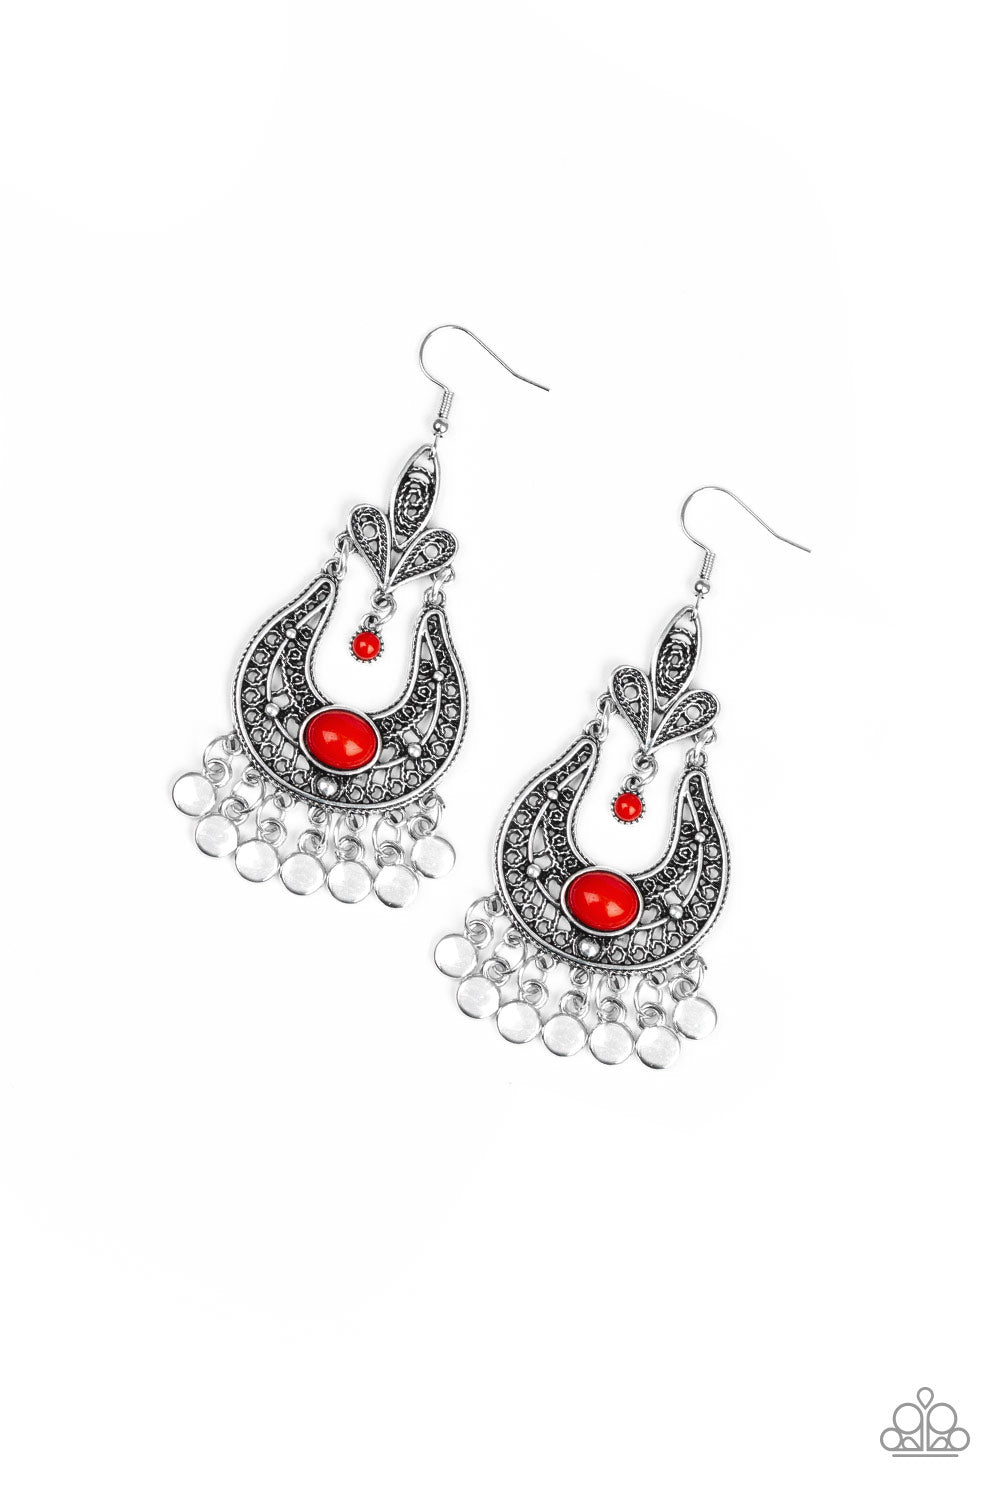 """Fiesta Flair - Red"" Ornate Dangle Pierced Earrings"